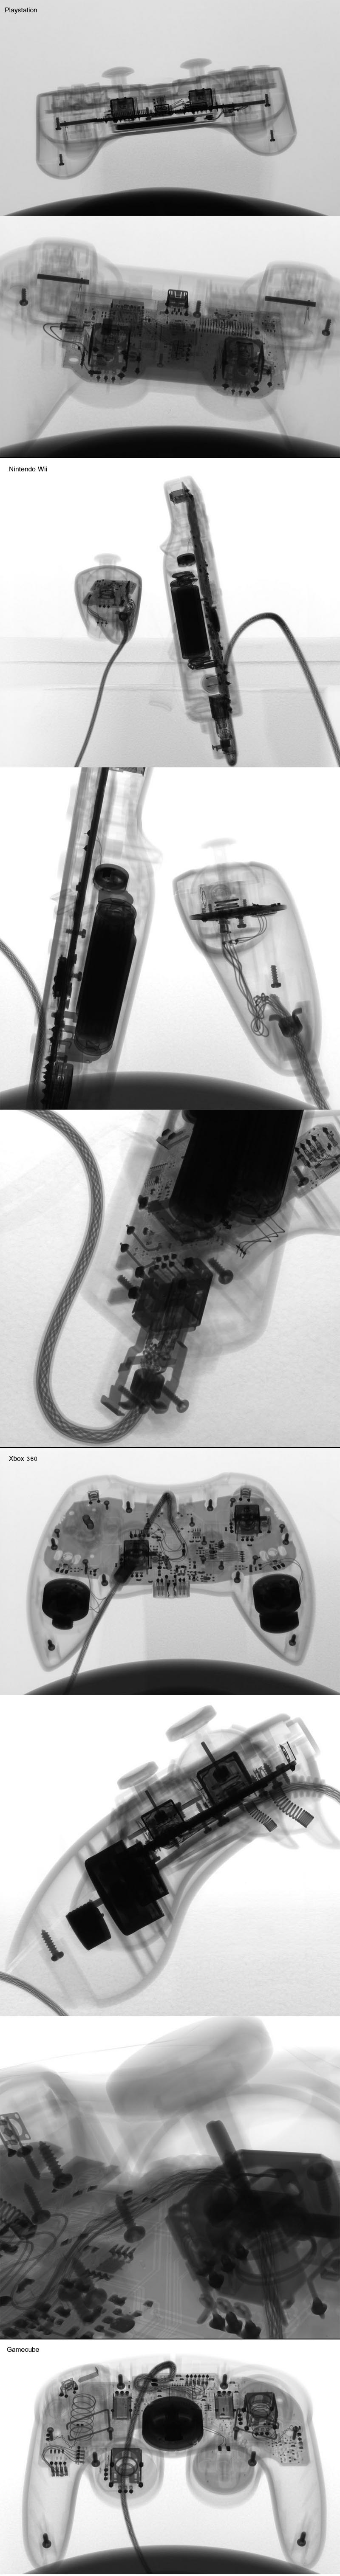 Various video game controllers put under an x-ray machine